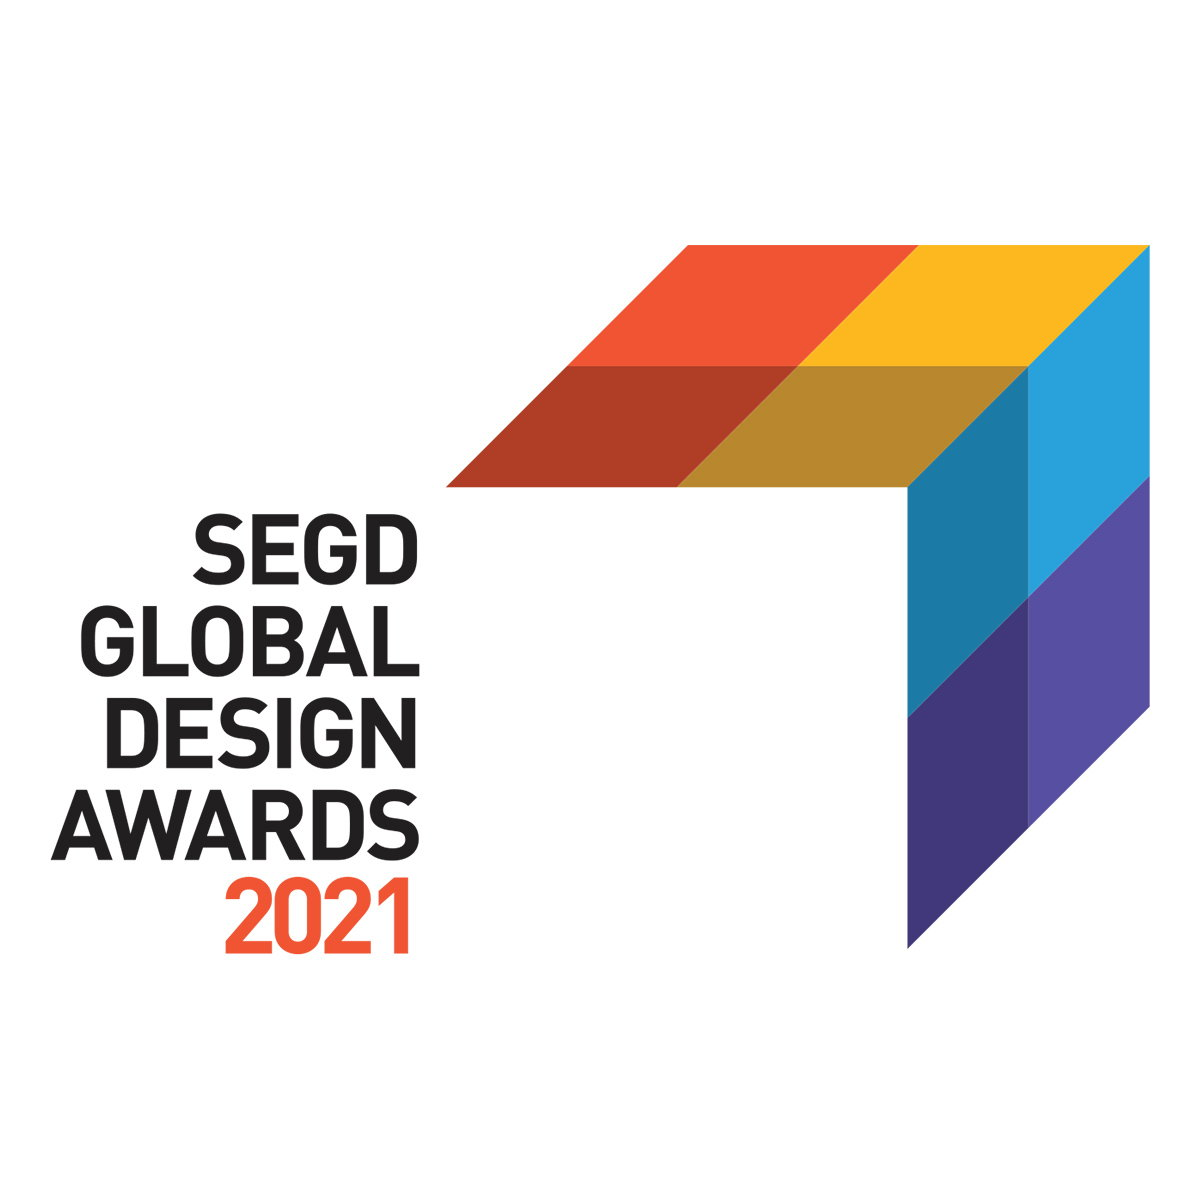 SEGD Global Design Awards 2021